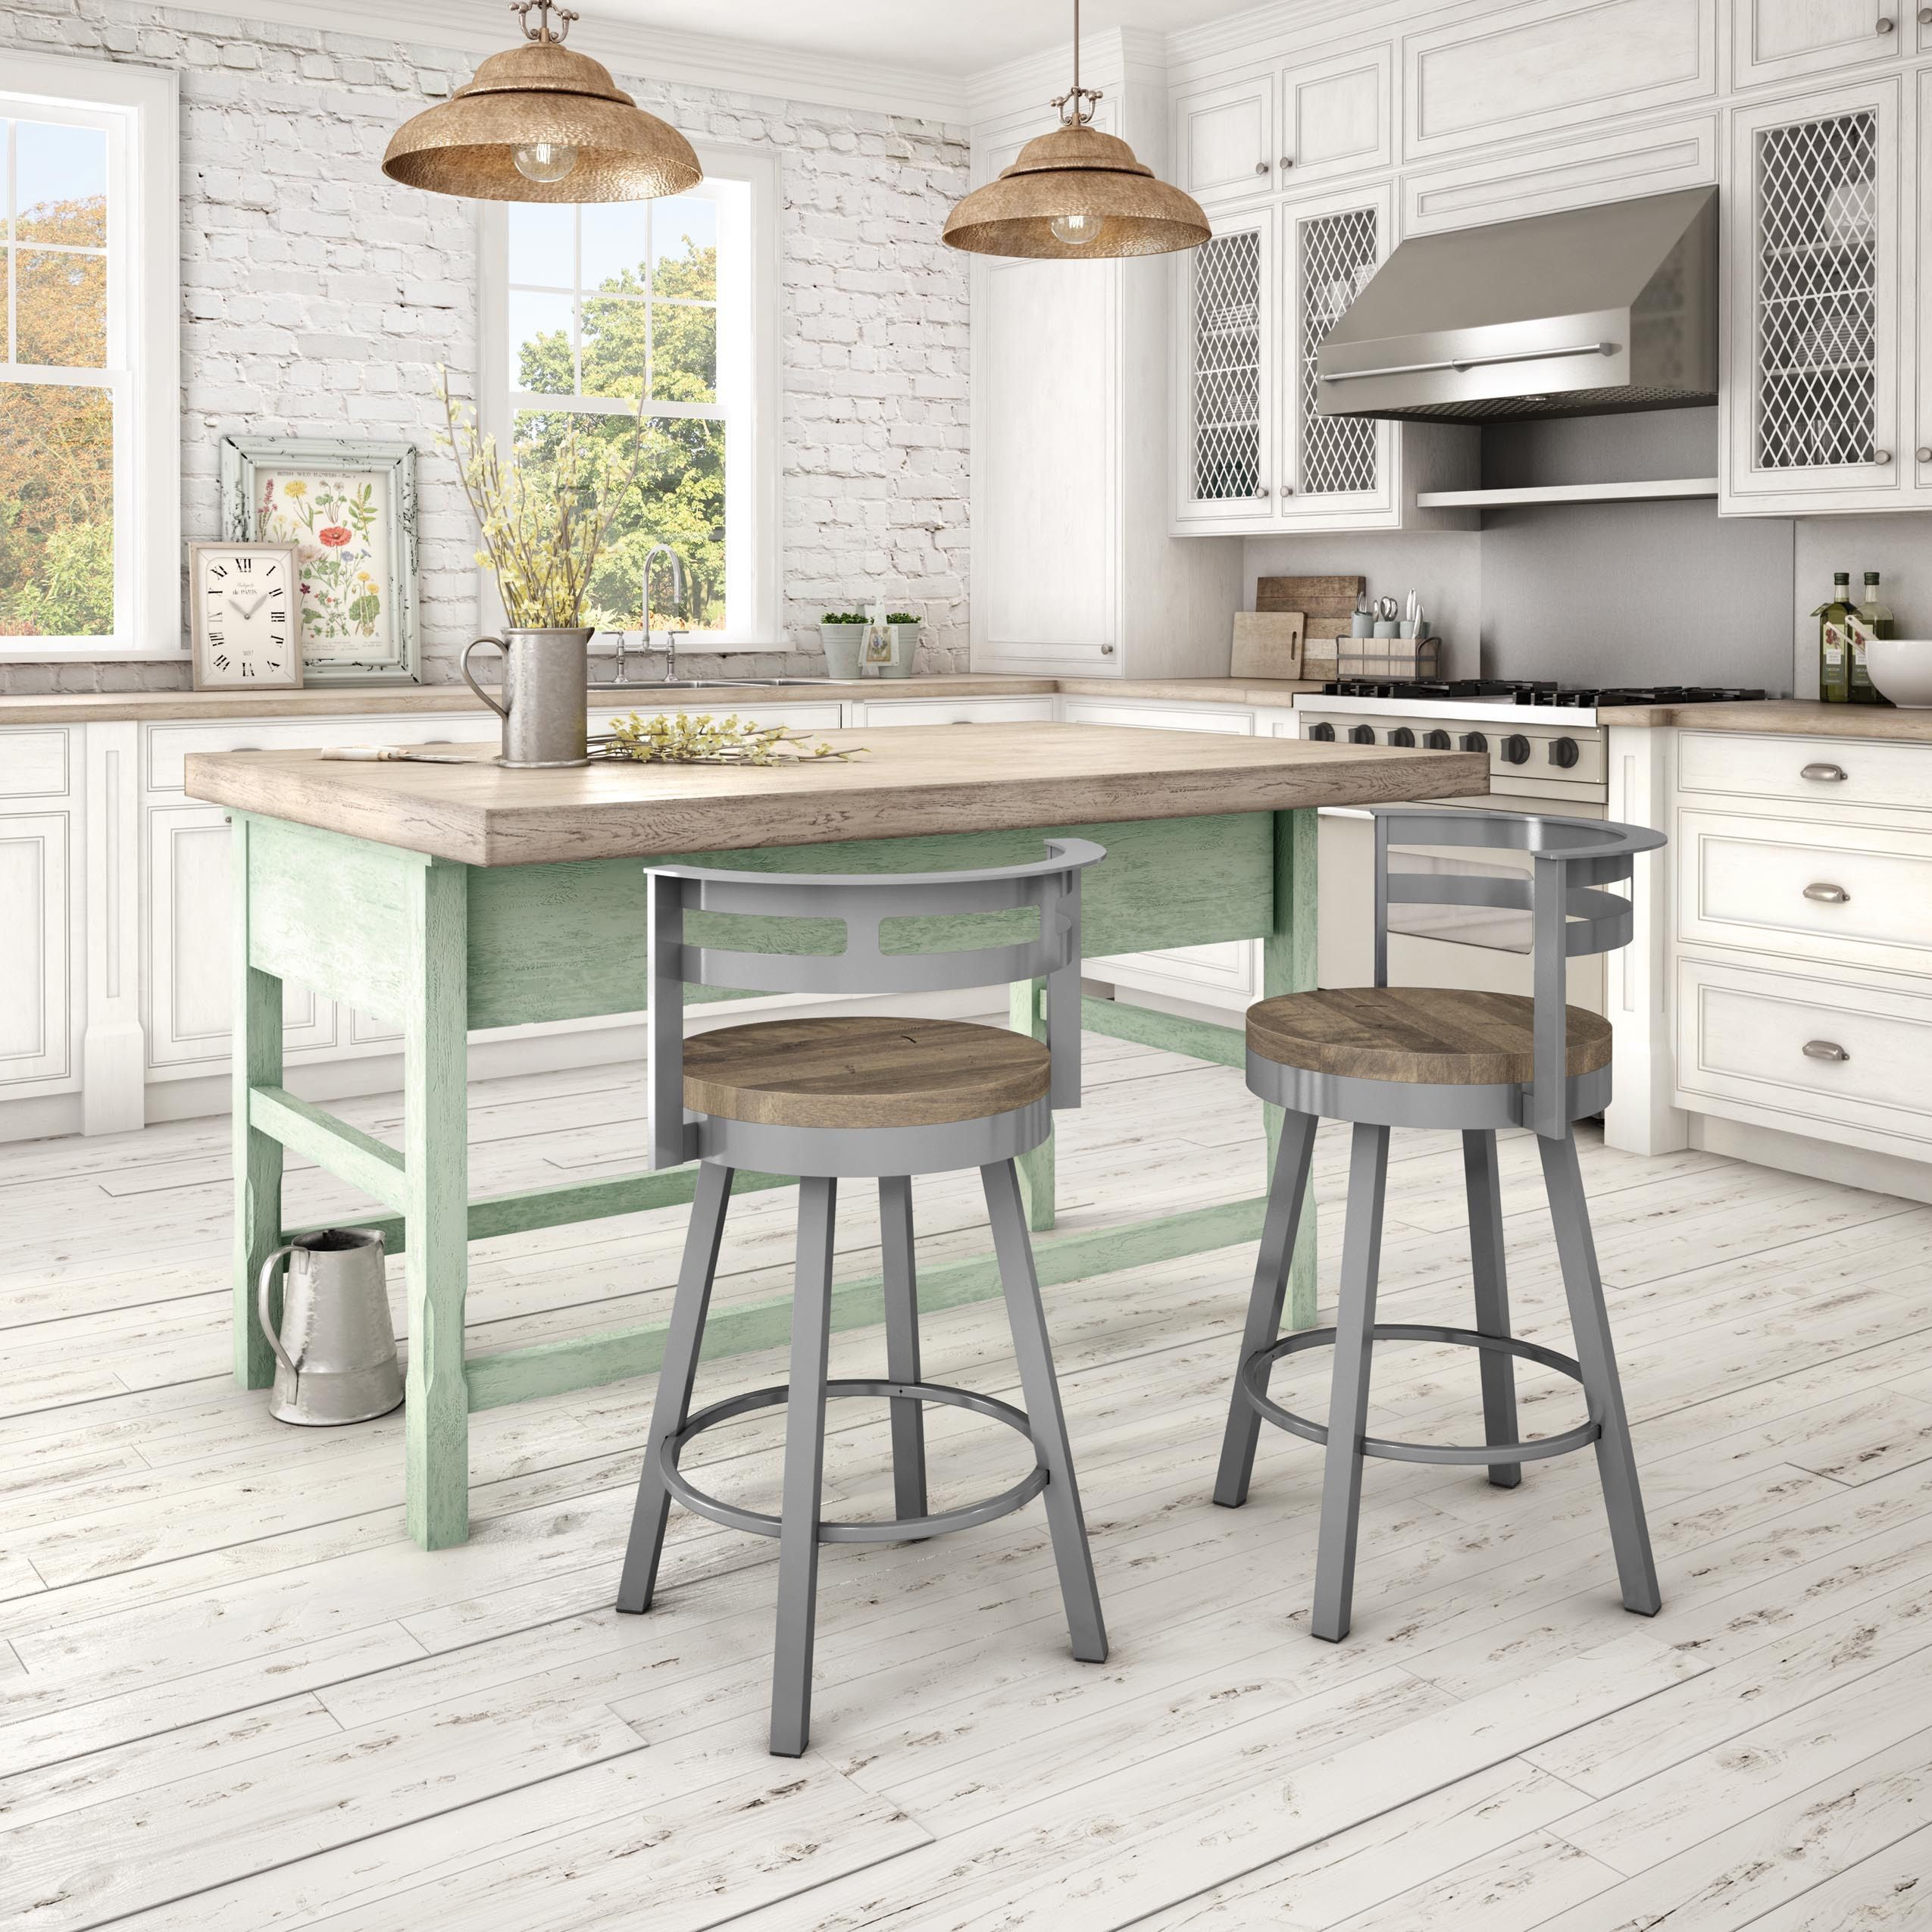 Beautiful Wooden Kitchen Counter Stools